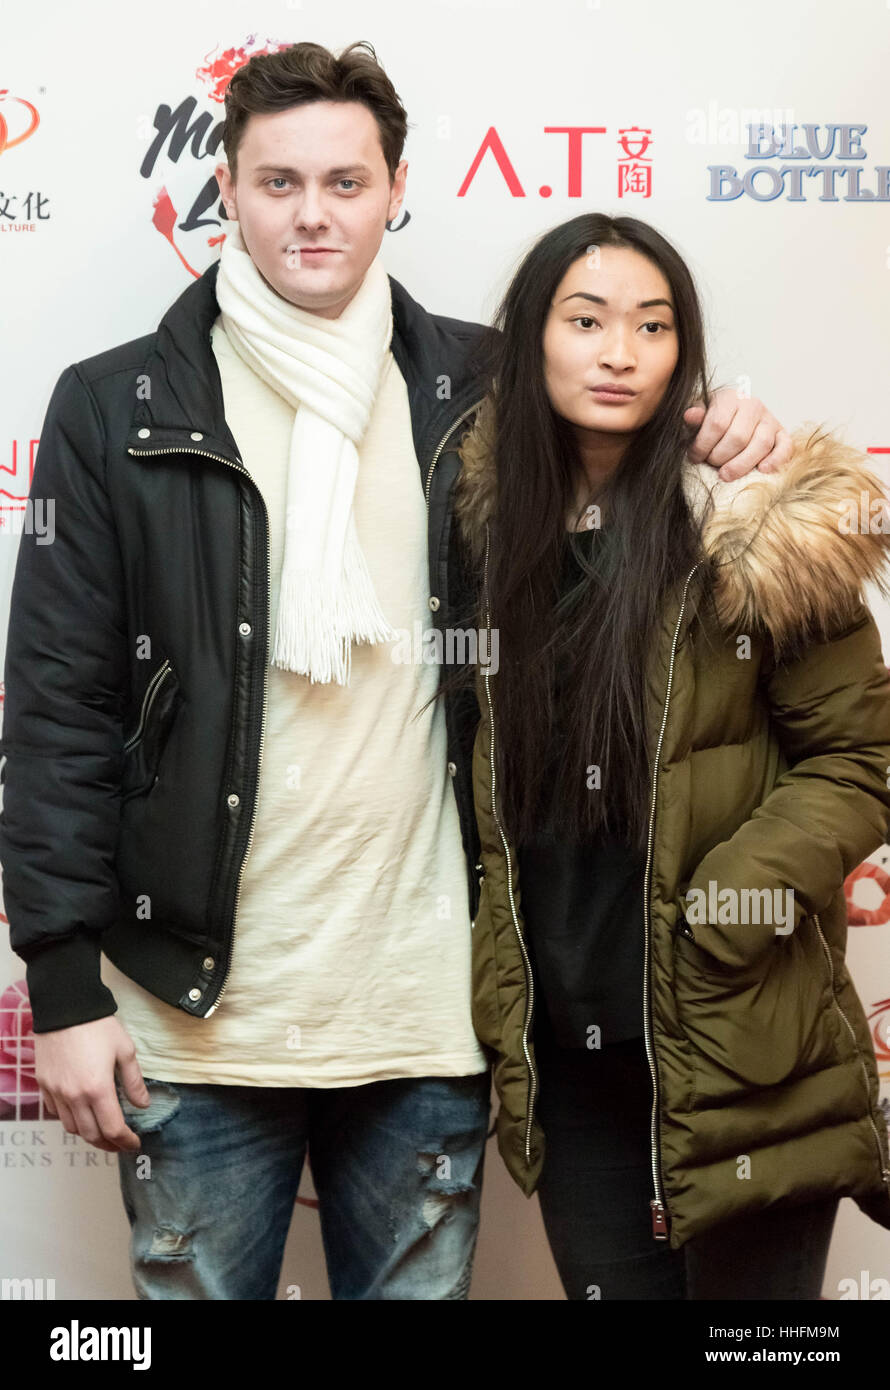 London, UK. 18th January, 2017. Tyger Drew-Honey and his date attend the VIP launch of the Magic Lantern Festival - Stock Image